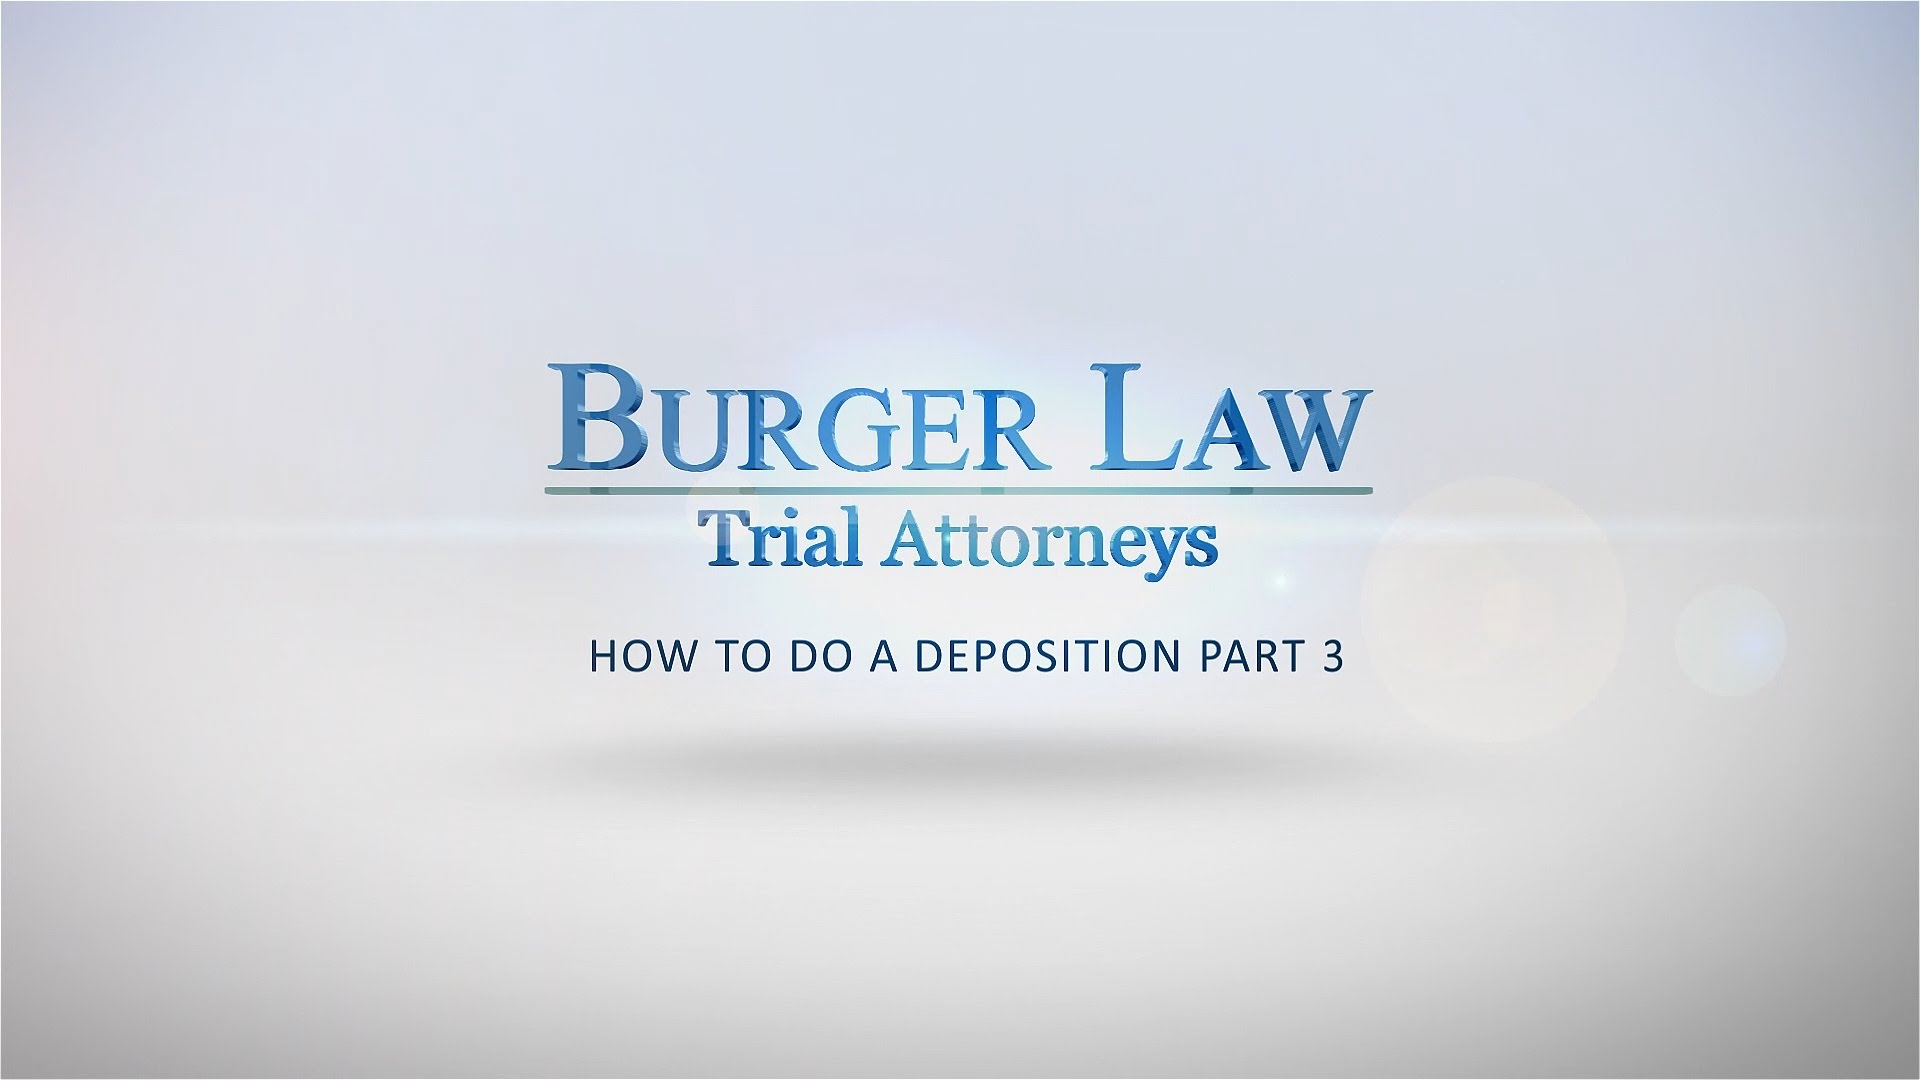 Deposition Preparation Pt 3 | Personal Injury Lawyers in St Louis, MO - BurgerLaw.com